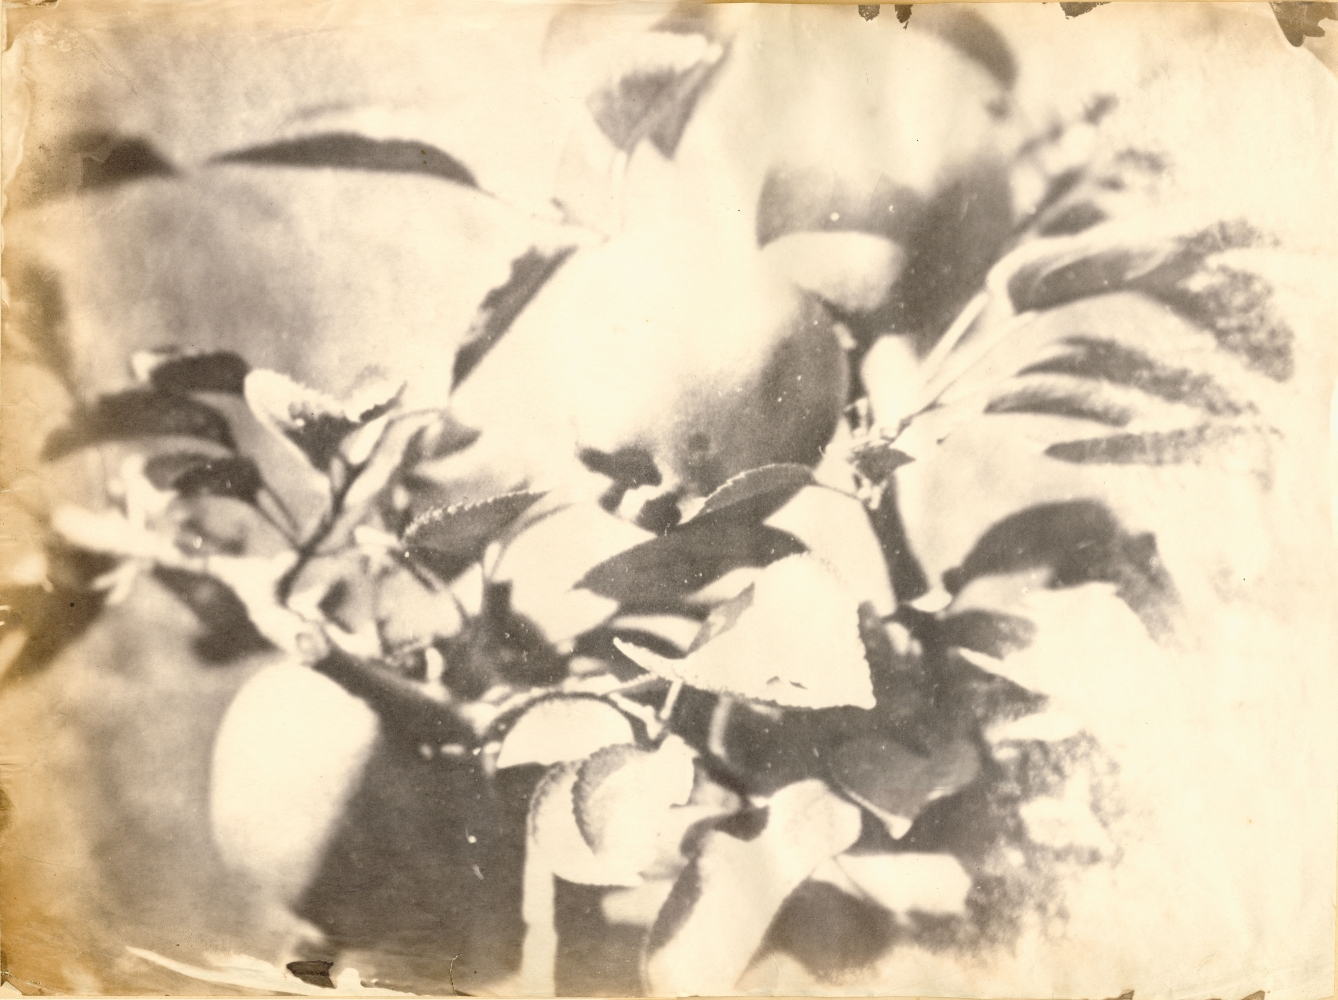 """Unidentified photographer attributed to the Circle of Charles Simart Branch of apples (detail), Folio 1 verso*, from the album assembled circa 1856-1860 Salt print from an enlarged collodion negative 32.3 x 43.2 cm Red wetstamp """"A.M."""" on verso"""